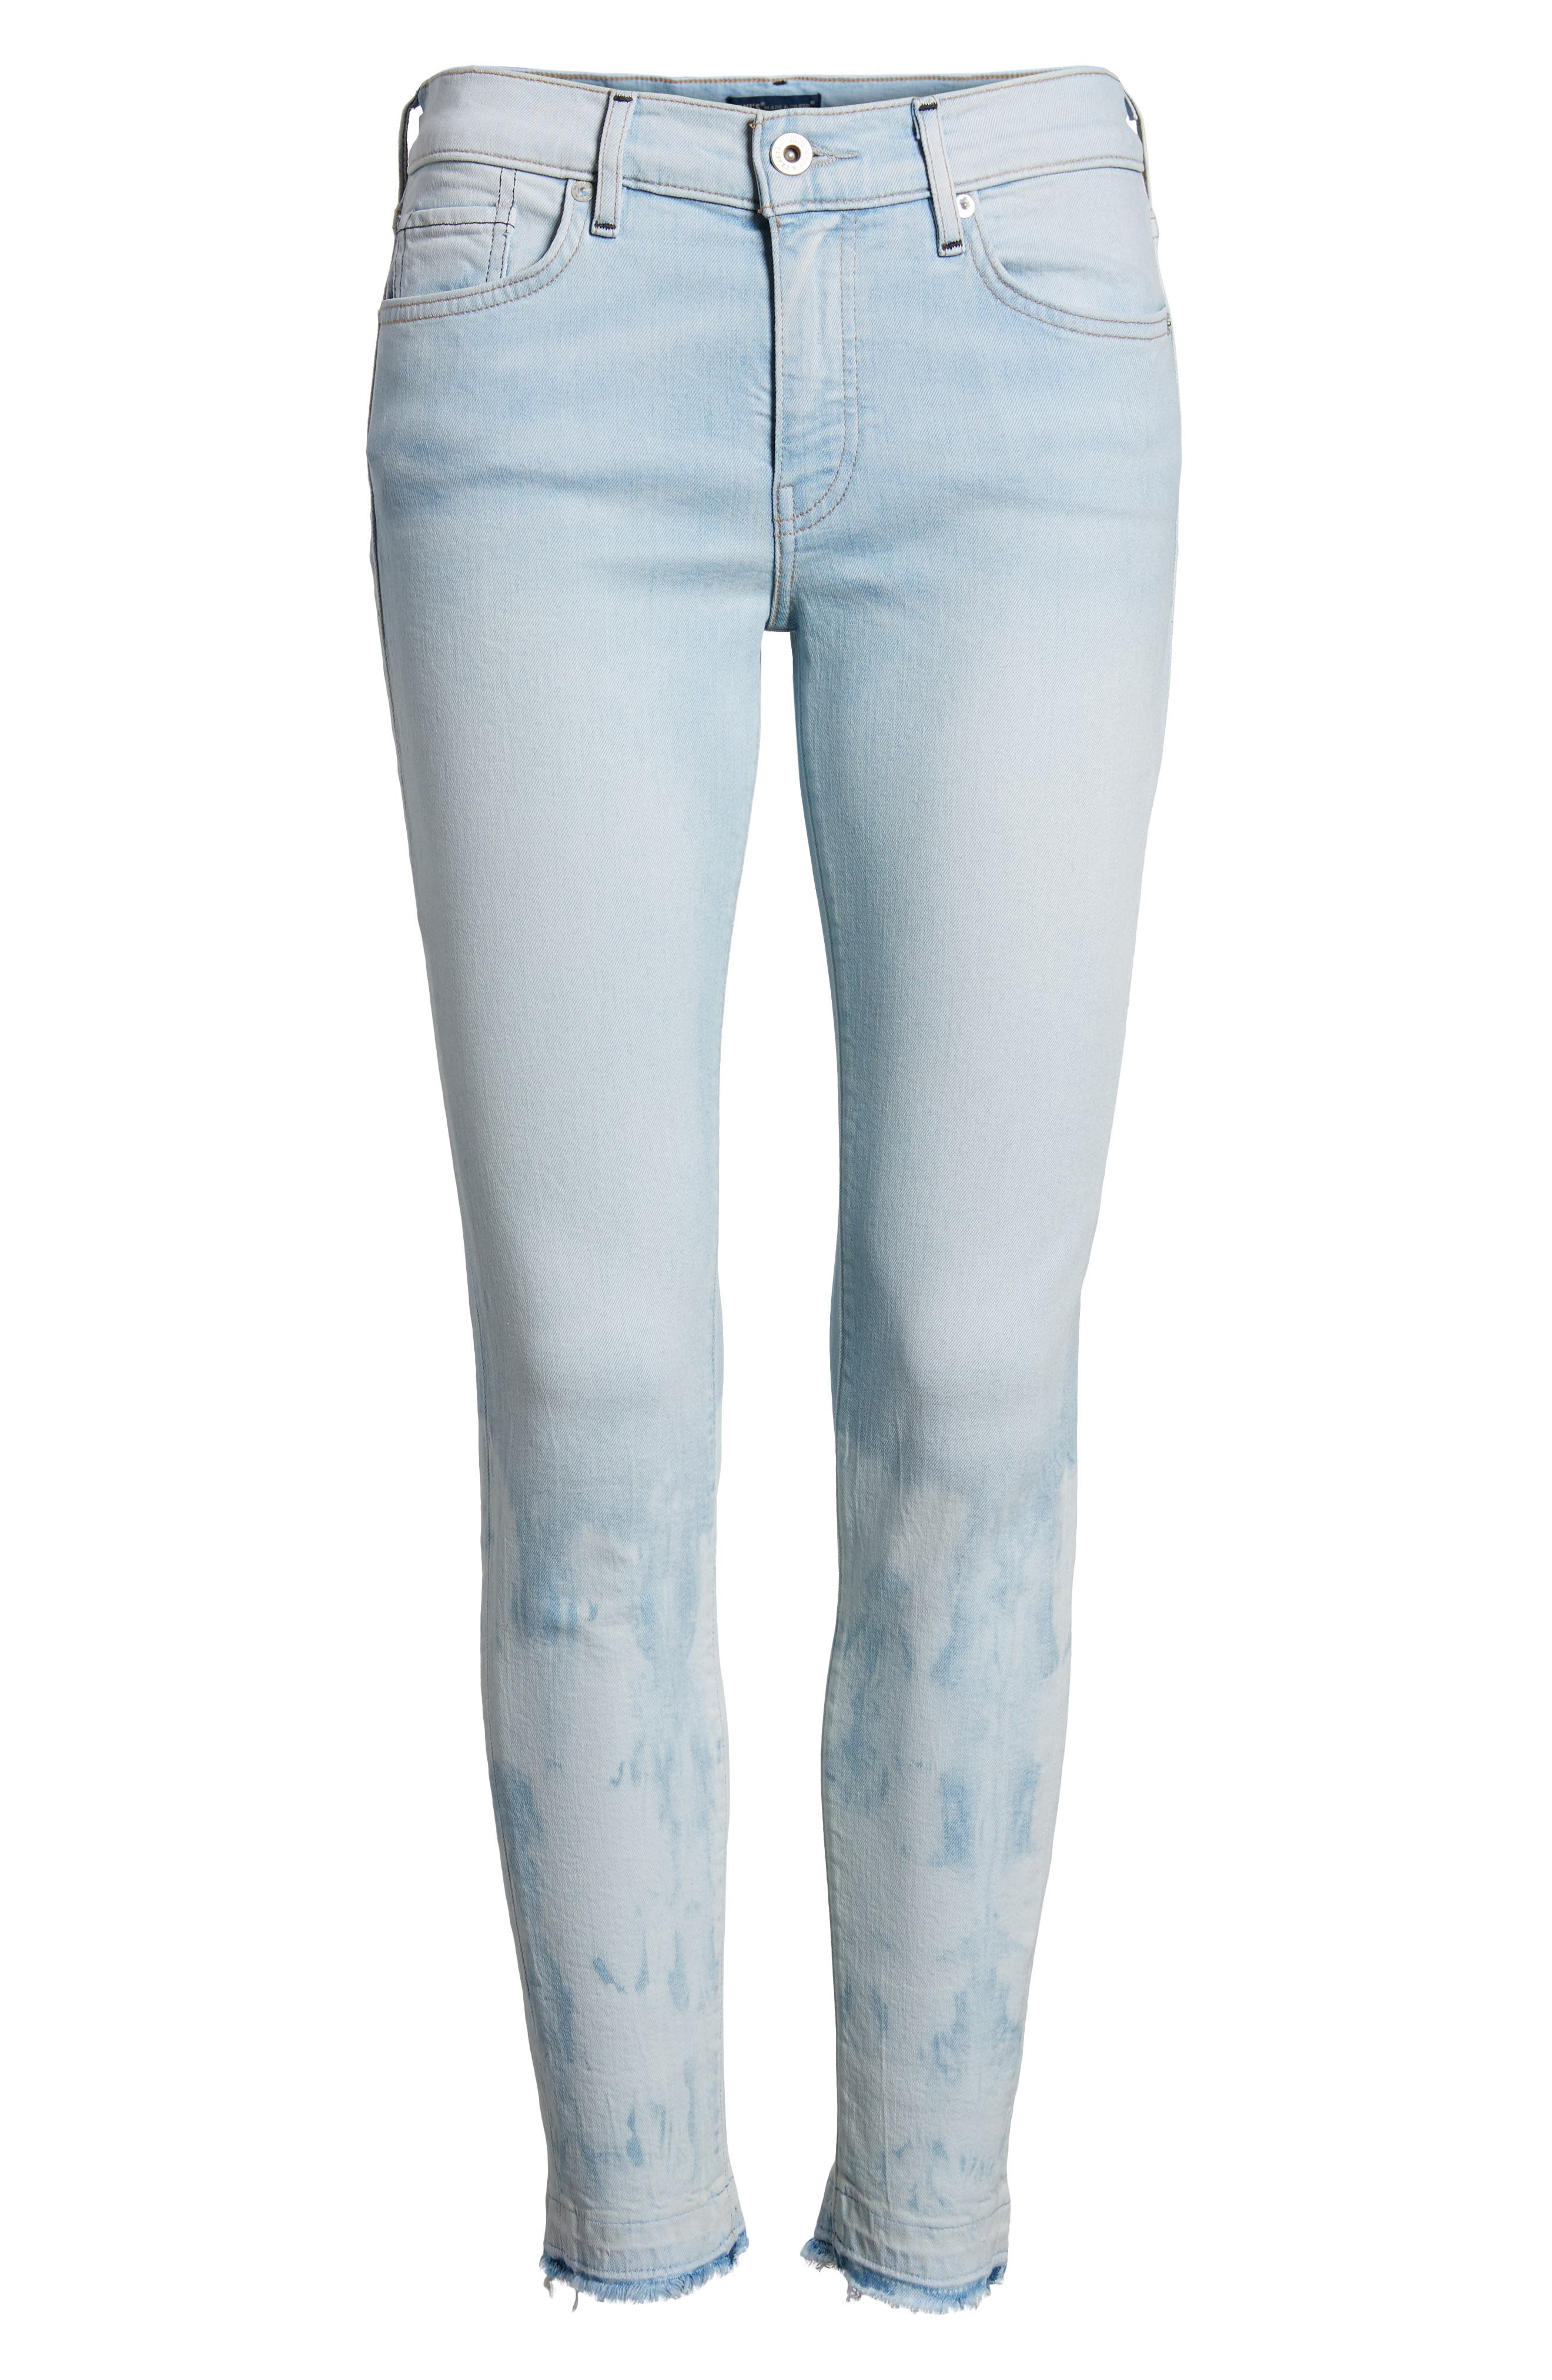 Empire Ankle Skinny Jeans,                             Alternate thumbnail 7, color,                             400